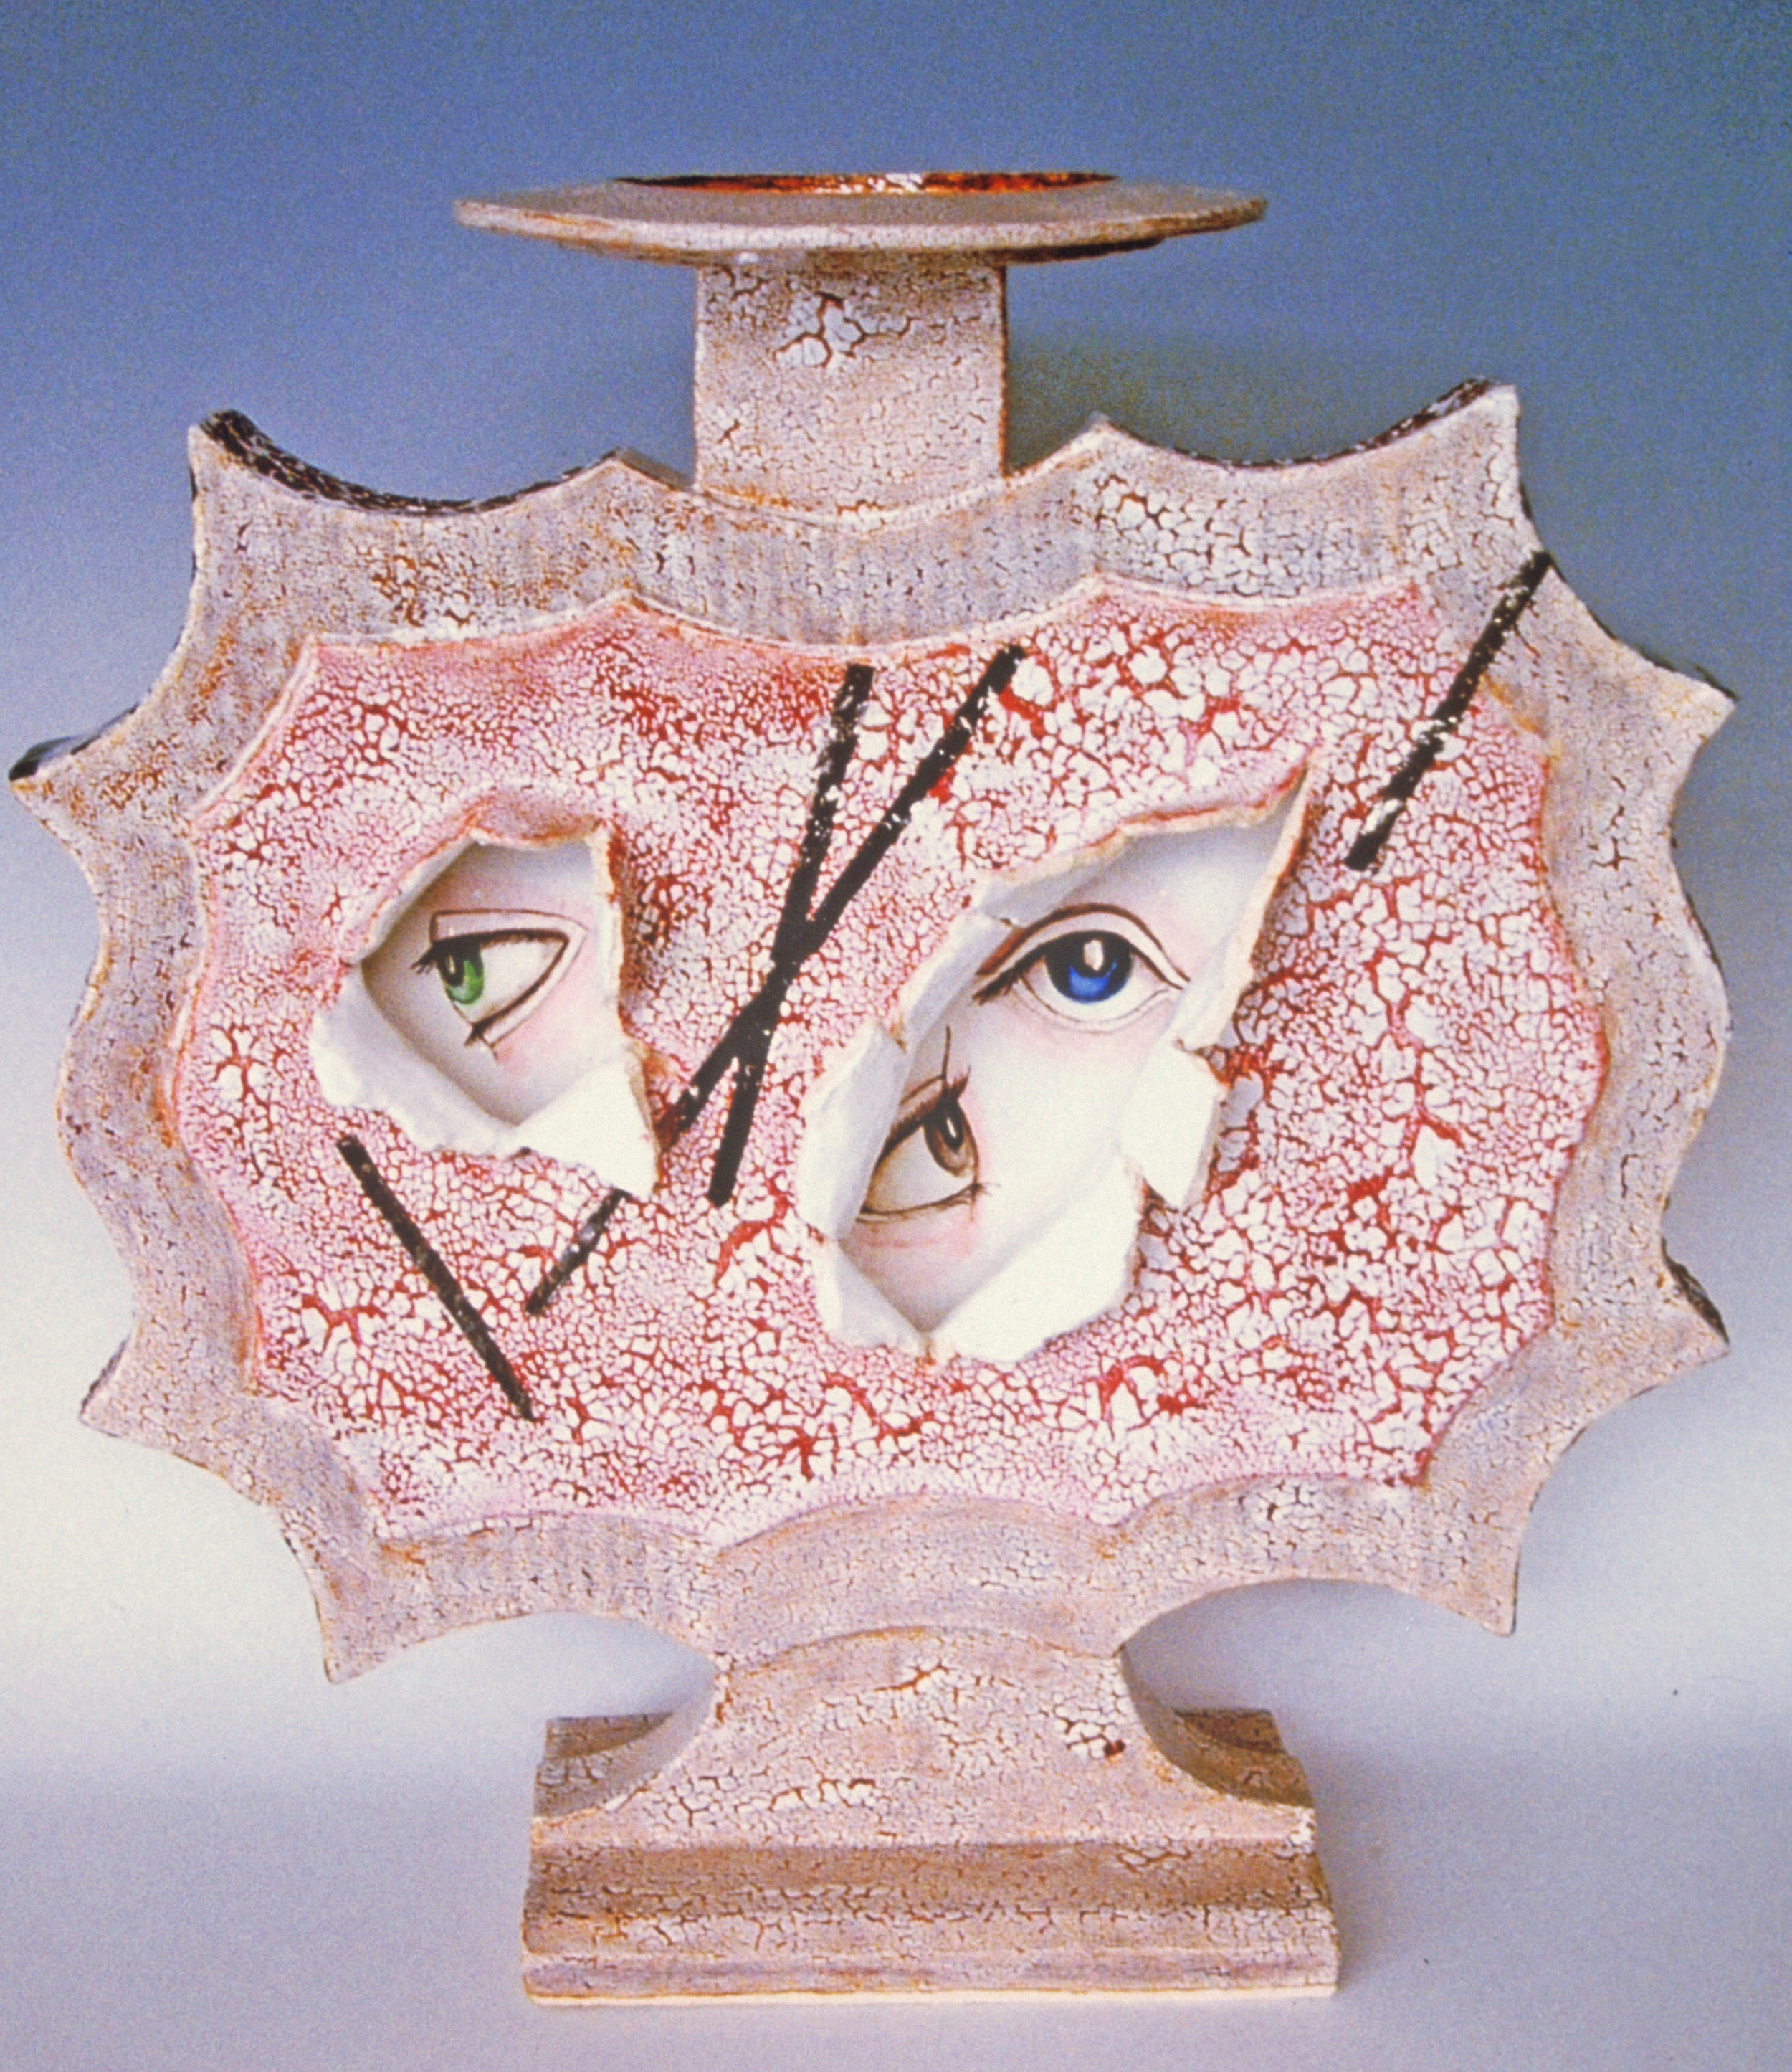 """""""On the possibility that vessels could have souls"""" ceramic sculpture, 21"""" x 19"""" x 9"""", 2012"""